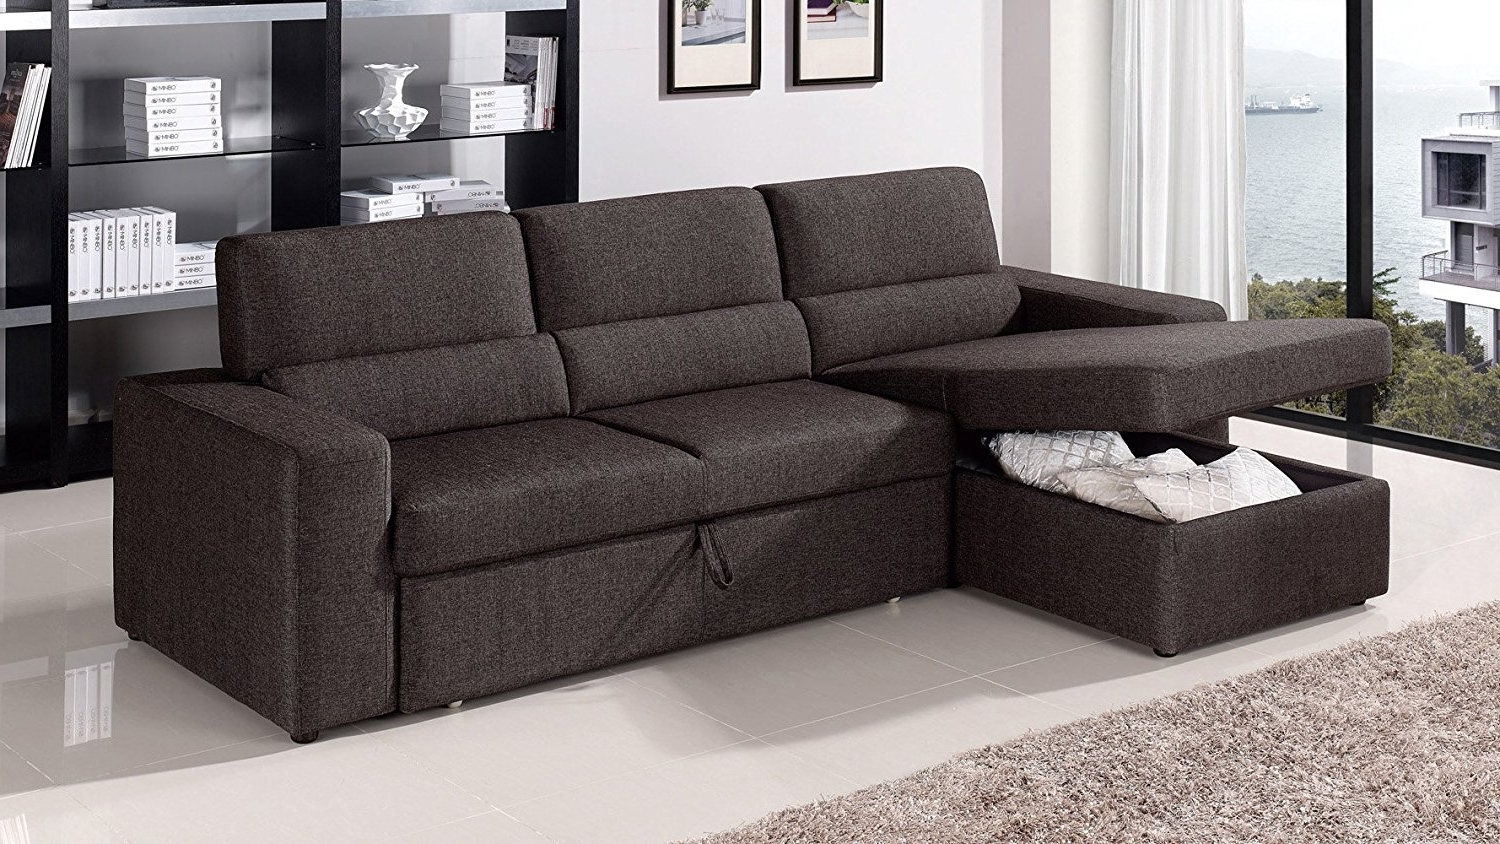 Amazon: Black/brown Clubber Sleeper Sectional Sofa – Left Inside Well Known Sofa Bed Chaises (View 11 of 15)